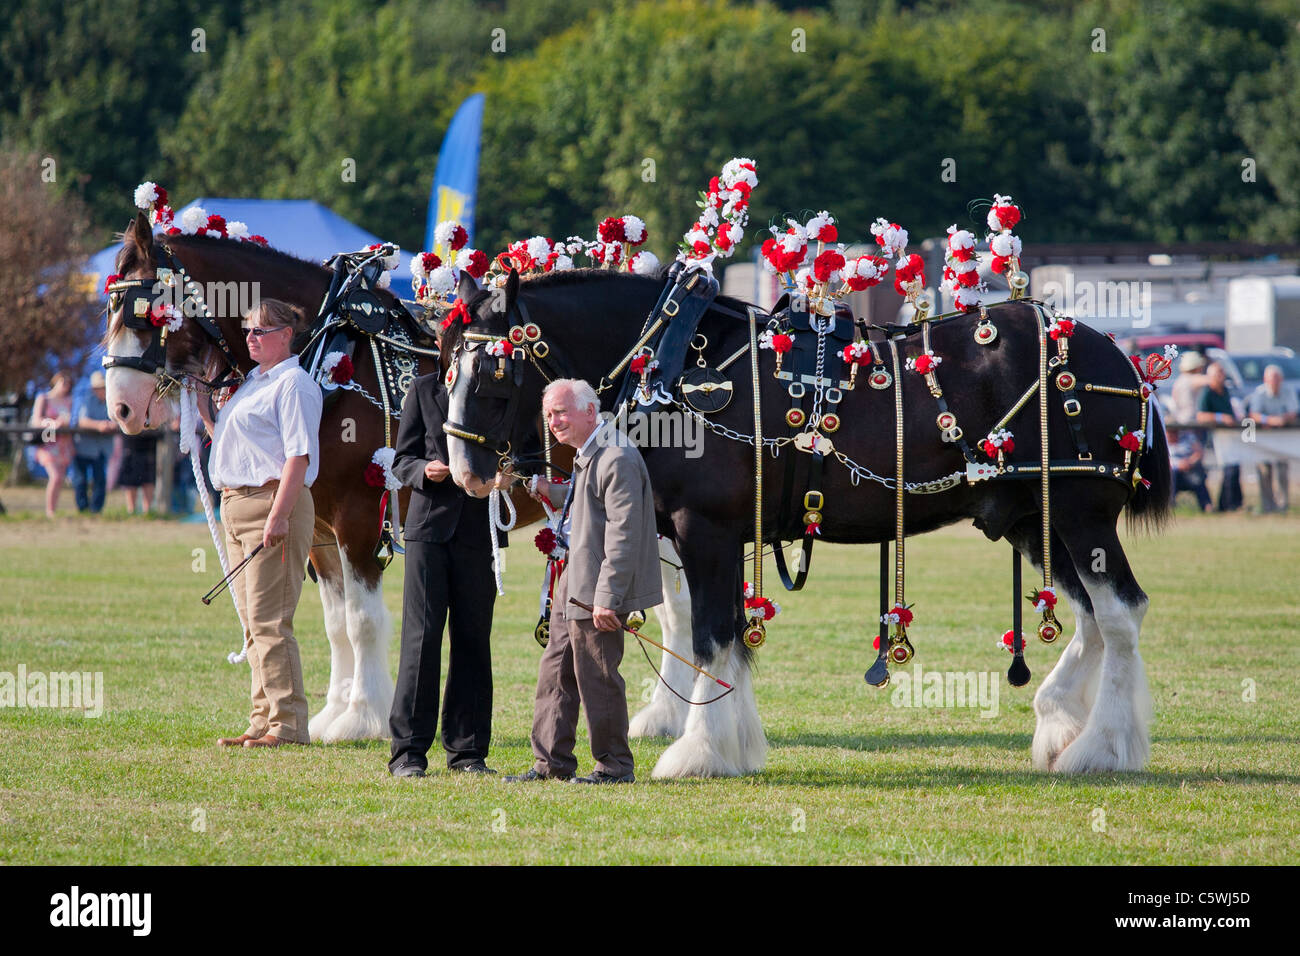 Shire Horses at the Bakewell Show, Bakewell, Derbyshire, England, UK - Stock Image